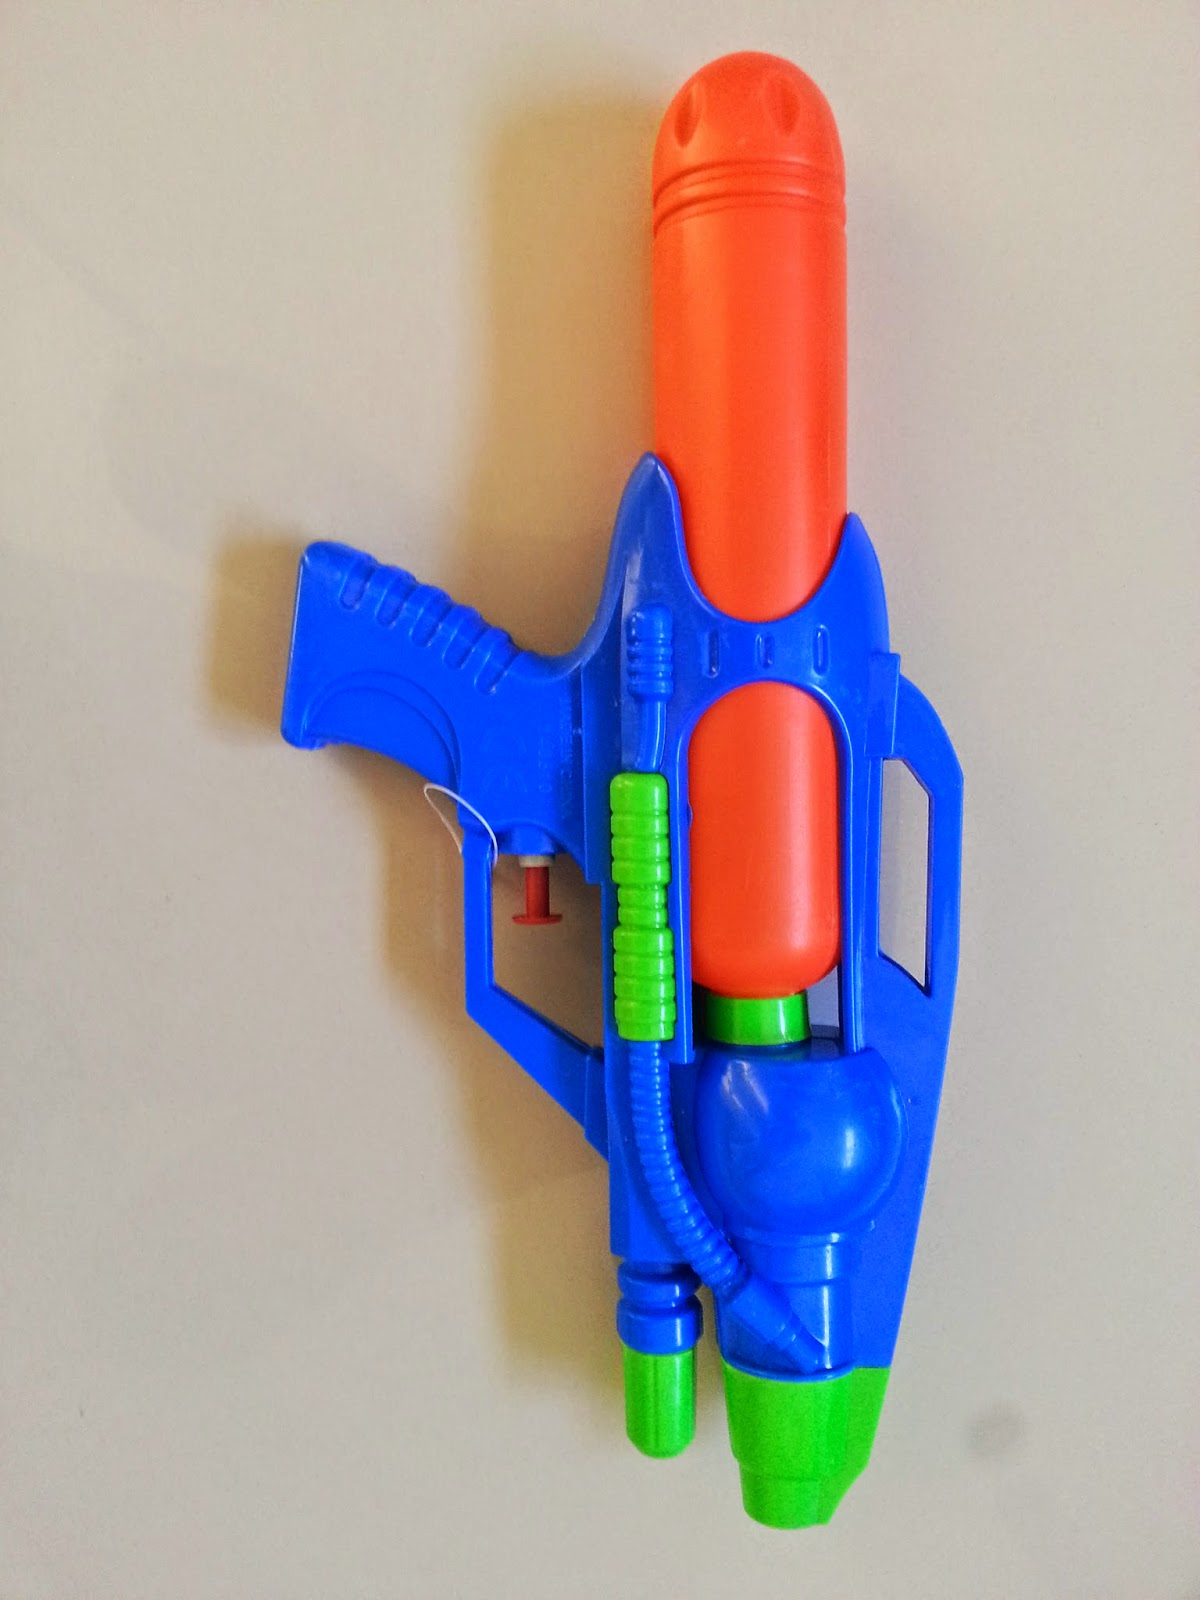 photo of blue, orange and green water pistol